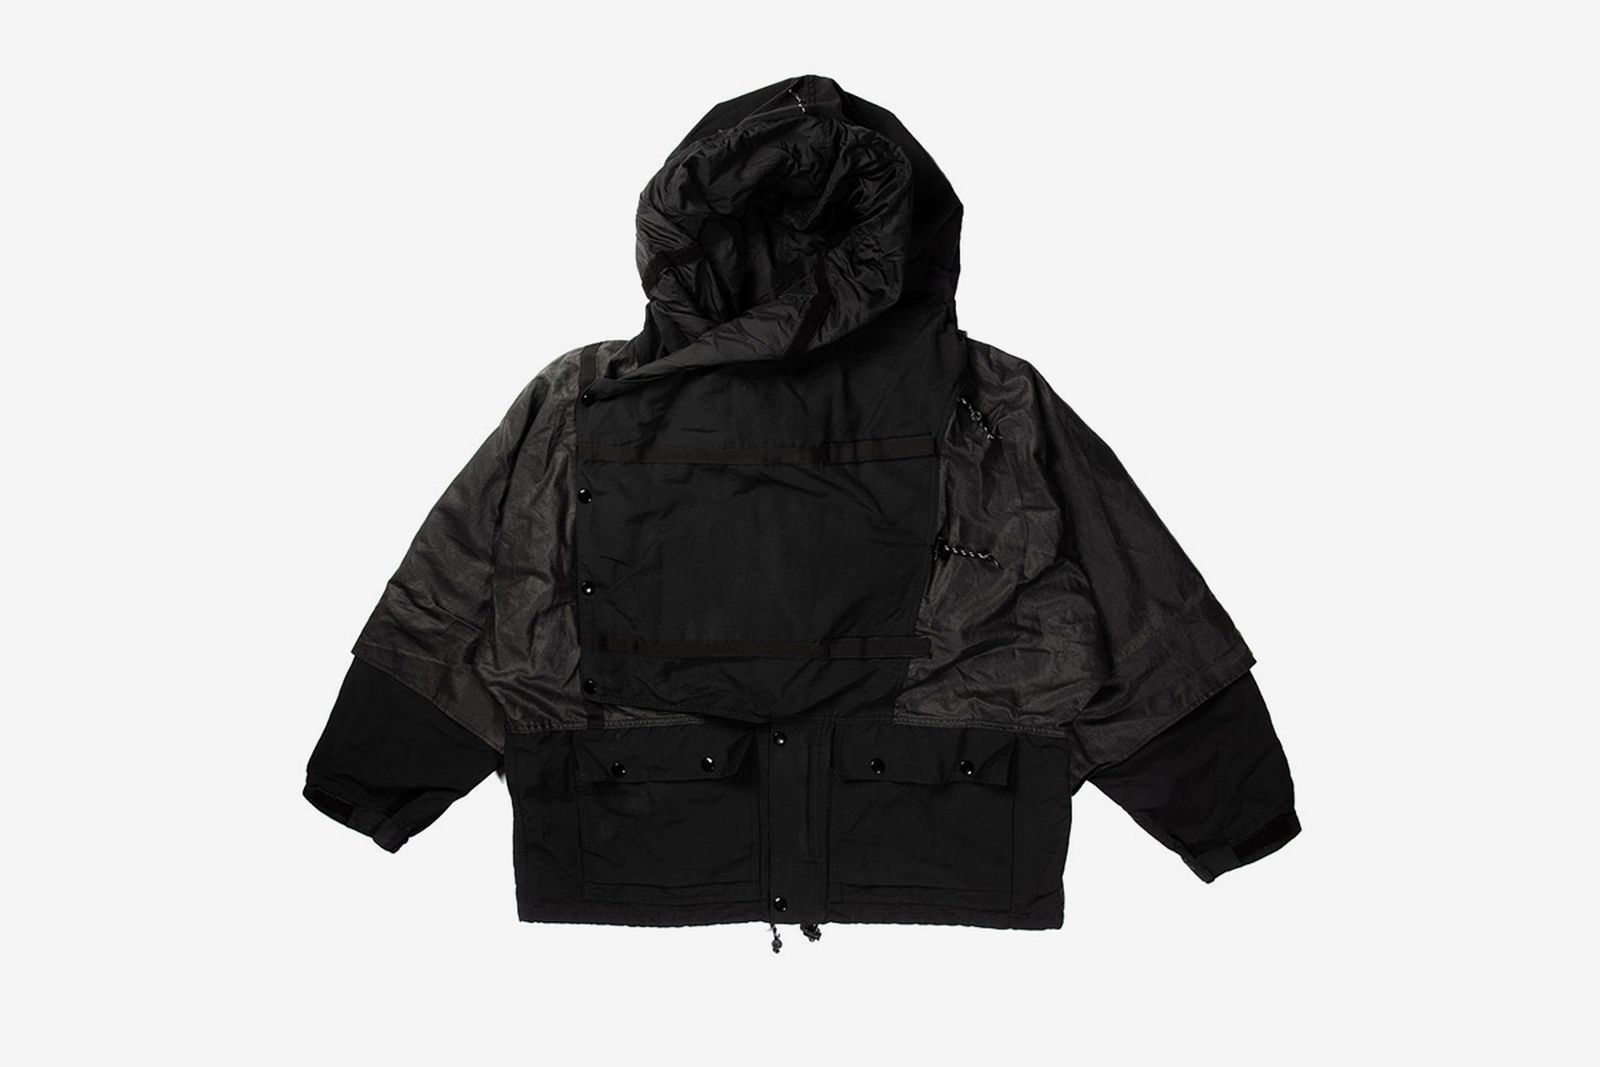 HIghsnobiety Editorial Top Purchase 2018 George Ocampo the best of 2018